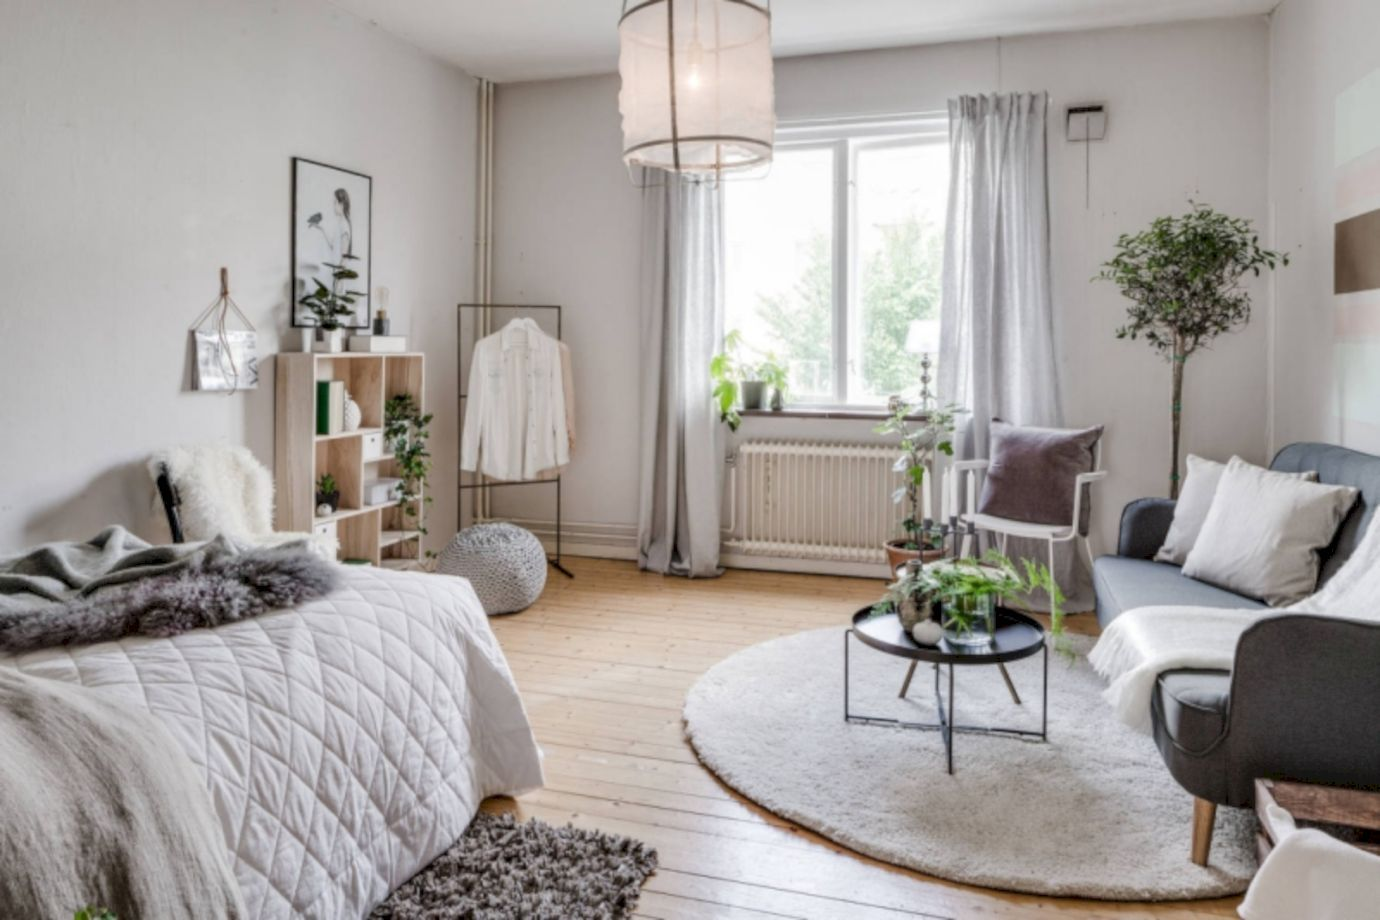 50 Cozy Minimalist Studio Apartment Decor Ideas